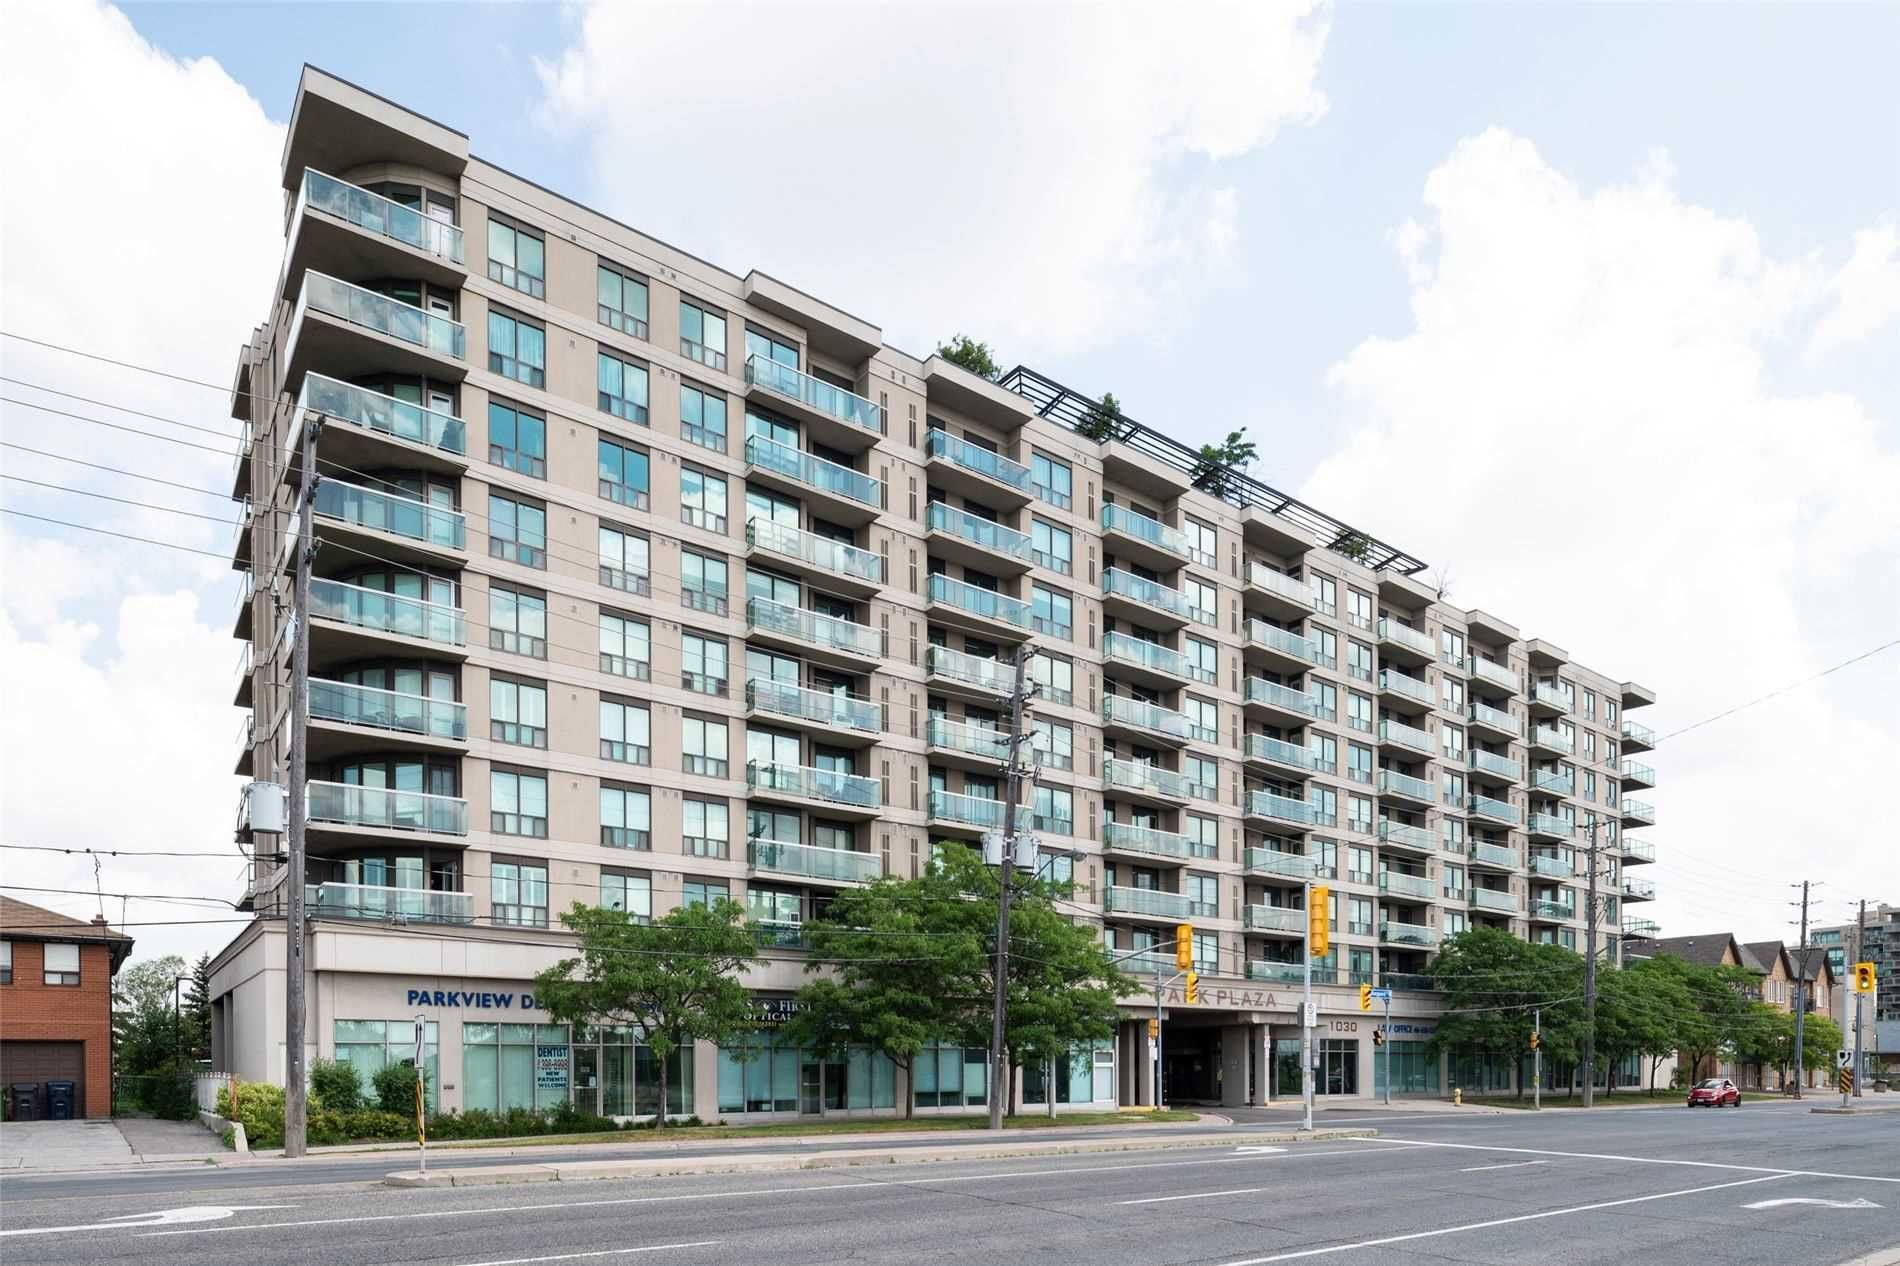 1030 Sheppard Ave W, unit 711 for sale in Toronto - image #2